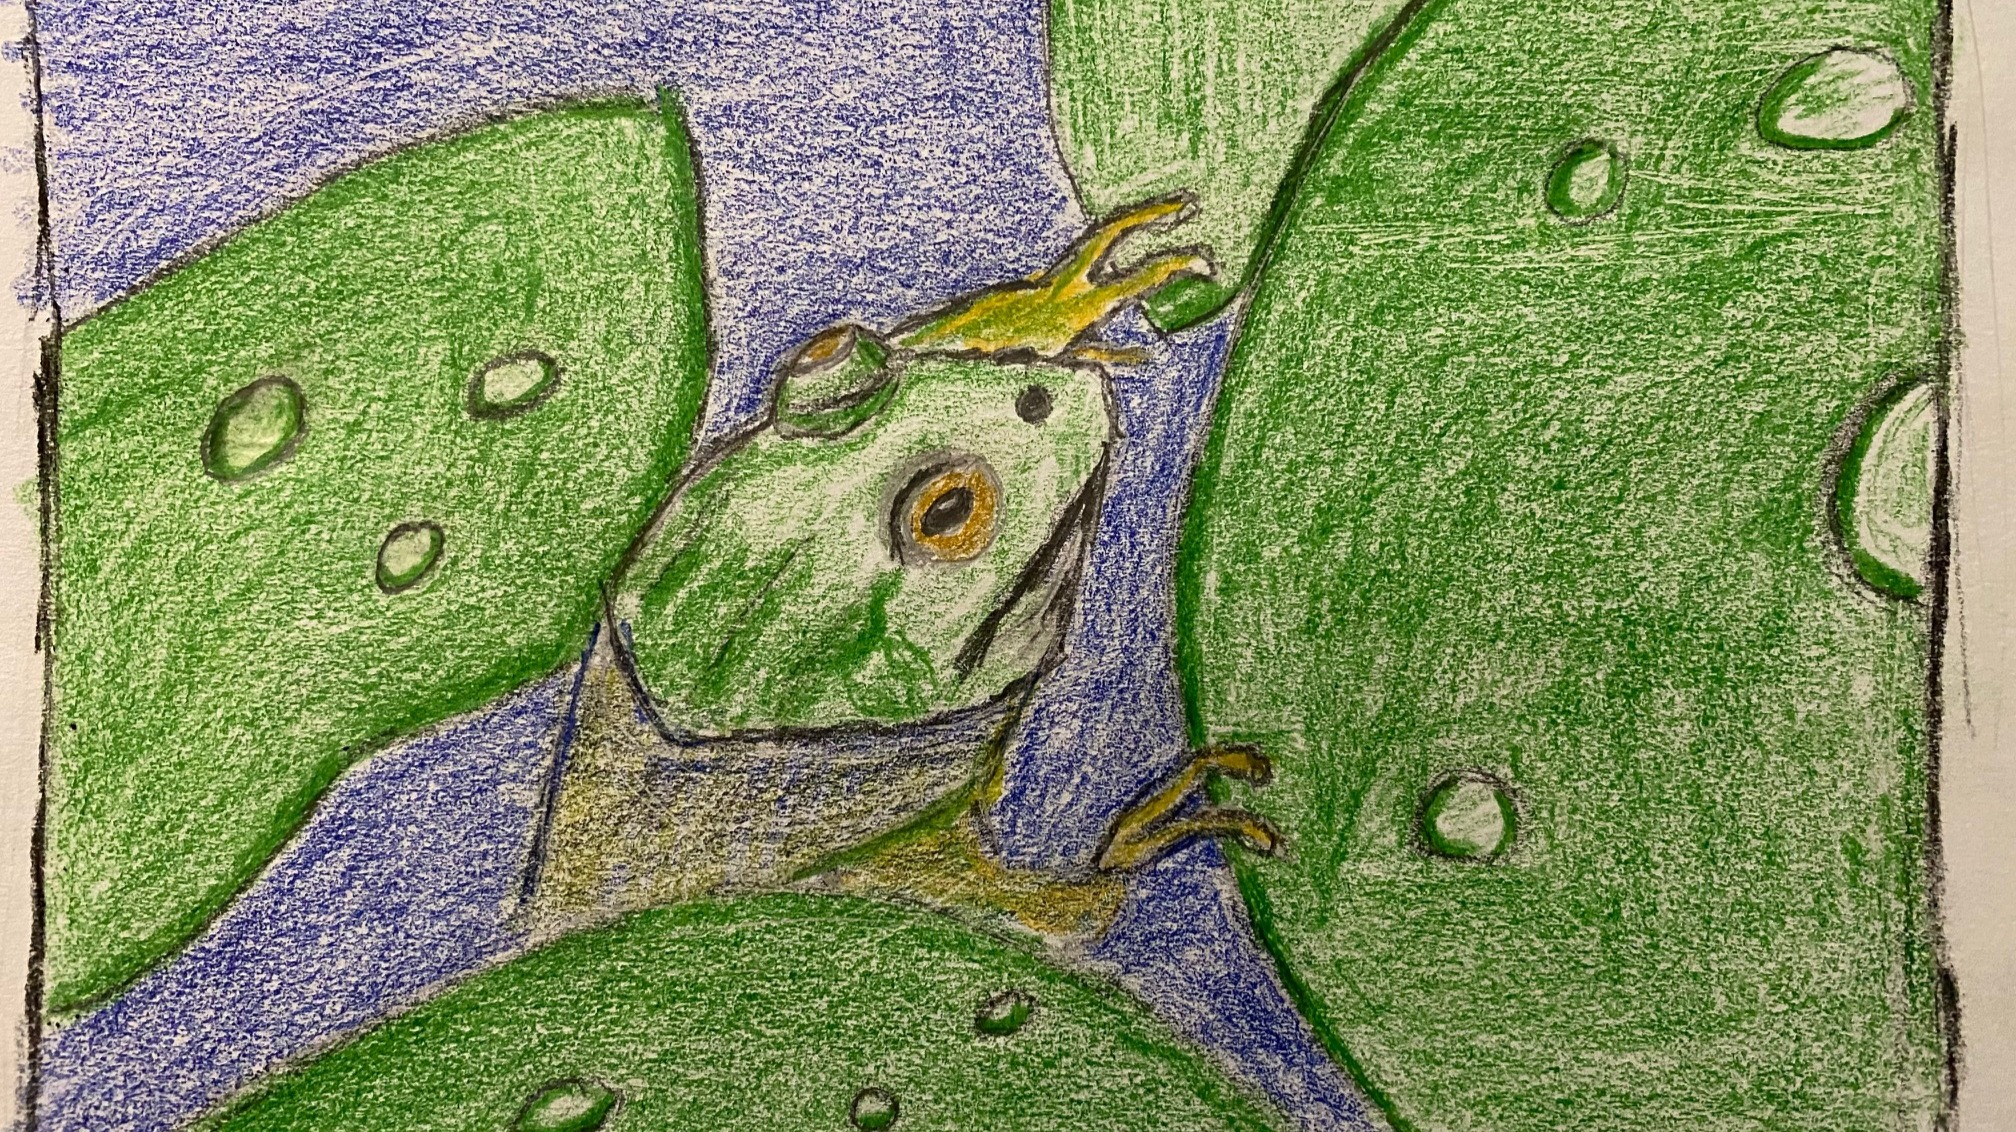 Frog and lily pads - colored pencil drawing